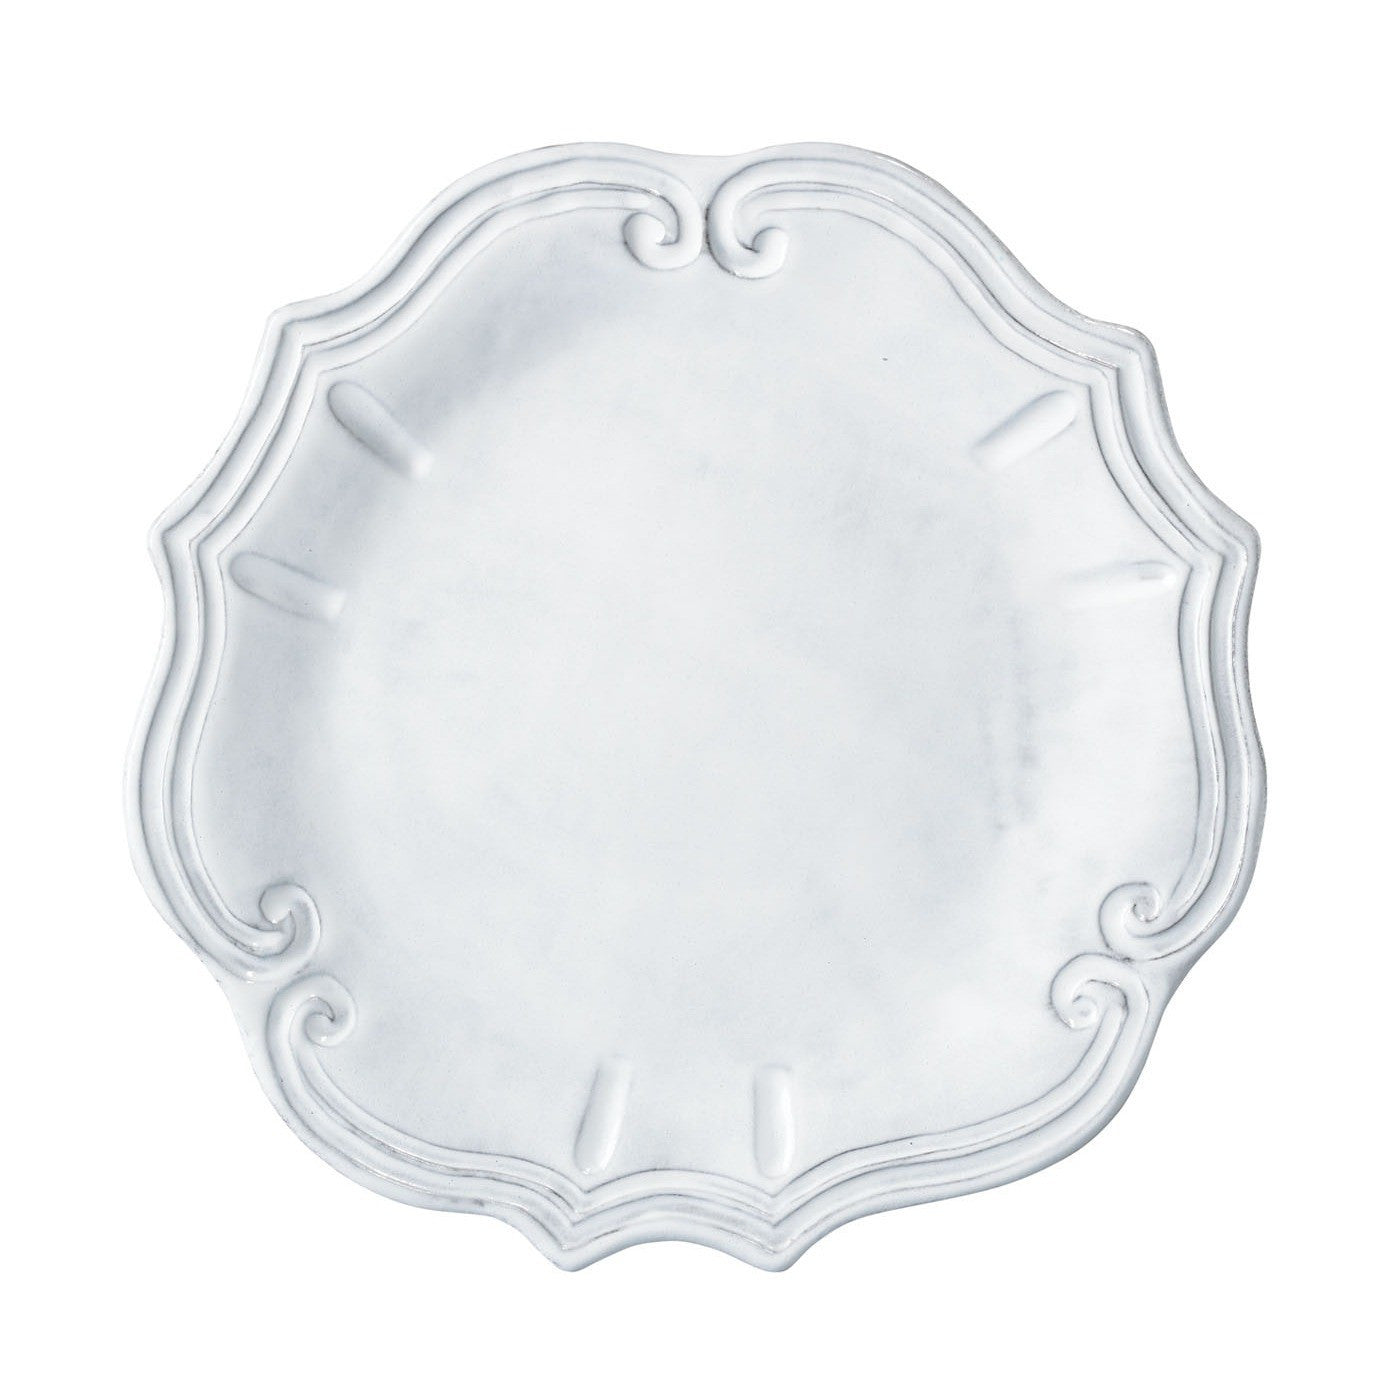 Incanto Baroque White Dinner Plate - Set of 4 , tableware - Vietri, Pezzo Bello  - 1